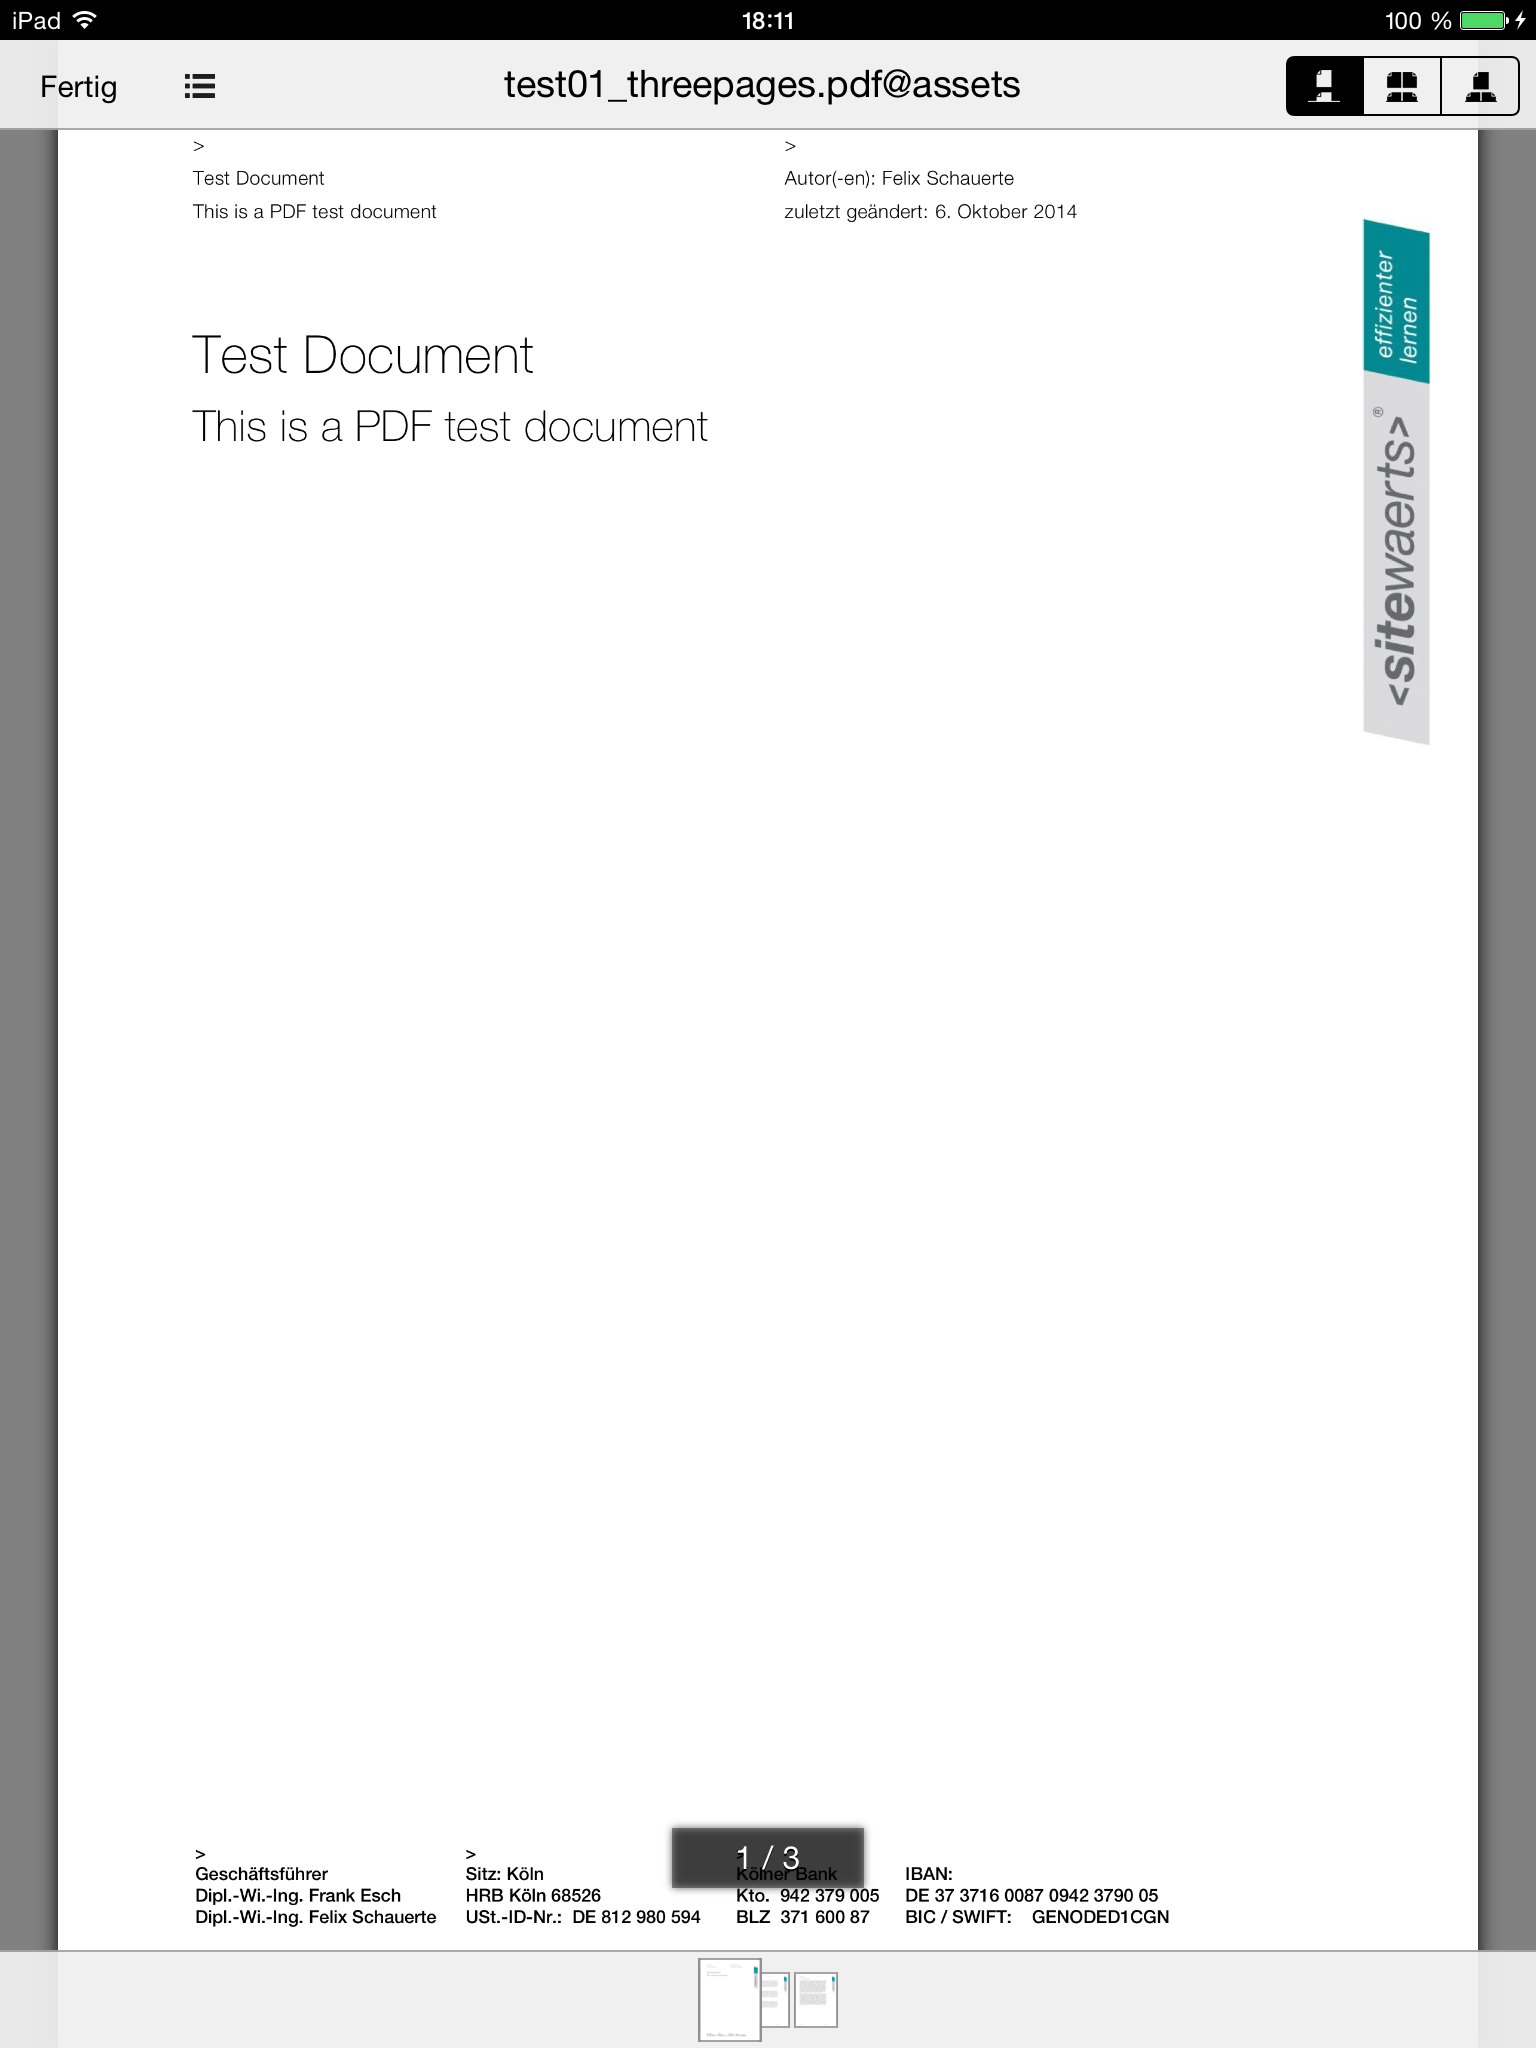 this document cannot be packaged due to missing plugins